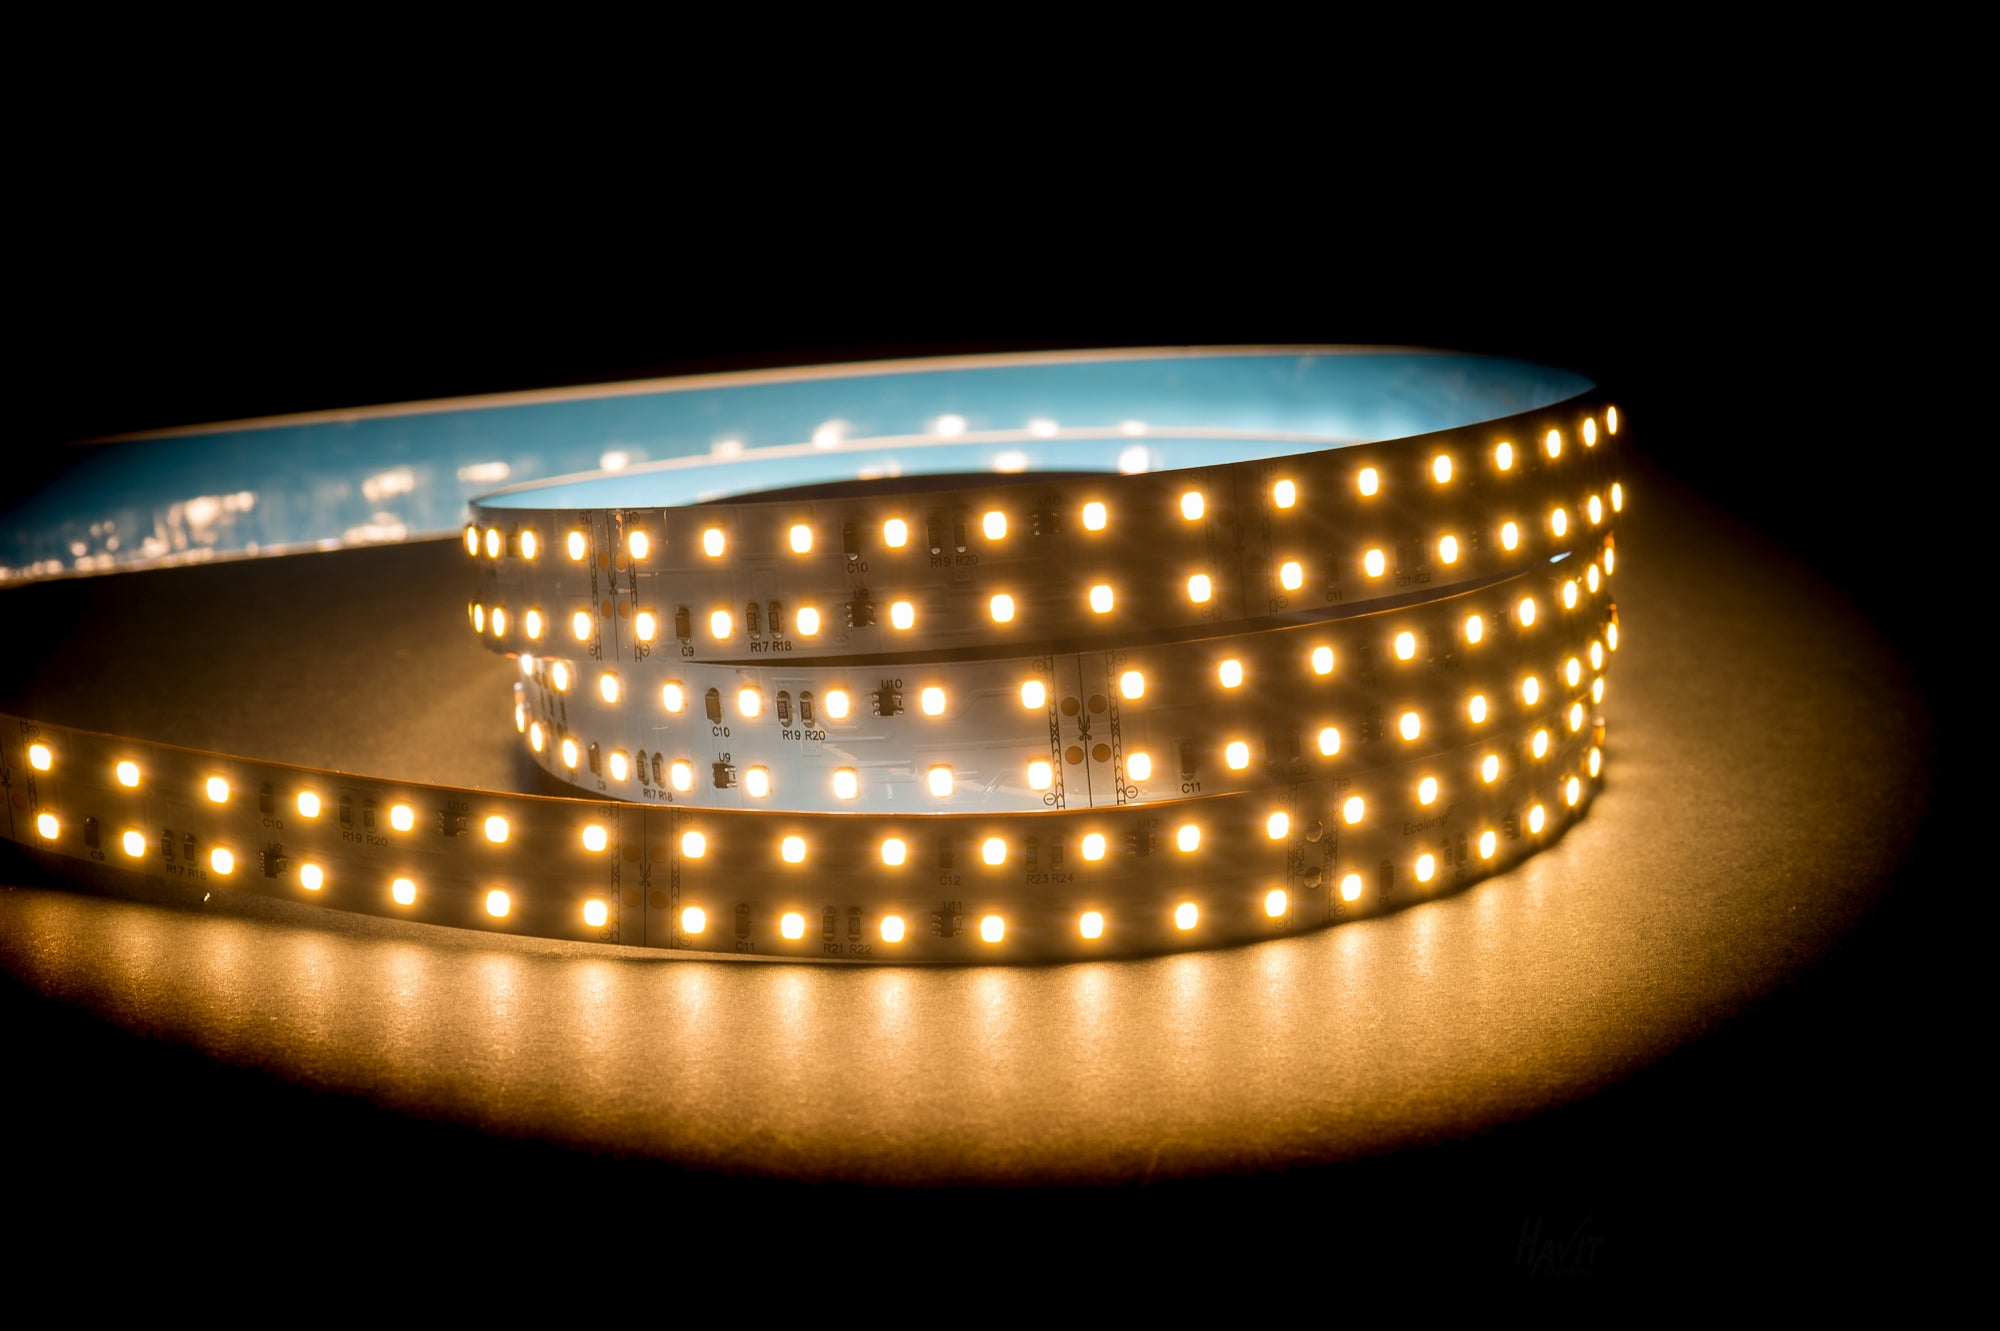 HV9783-IP20-168-3K - 32.6w IP20 LED Strip 3000k